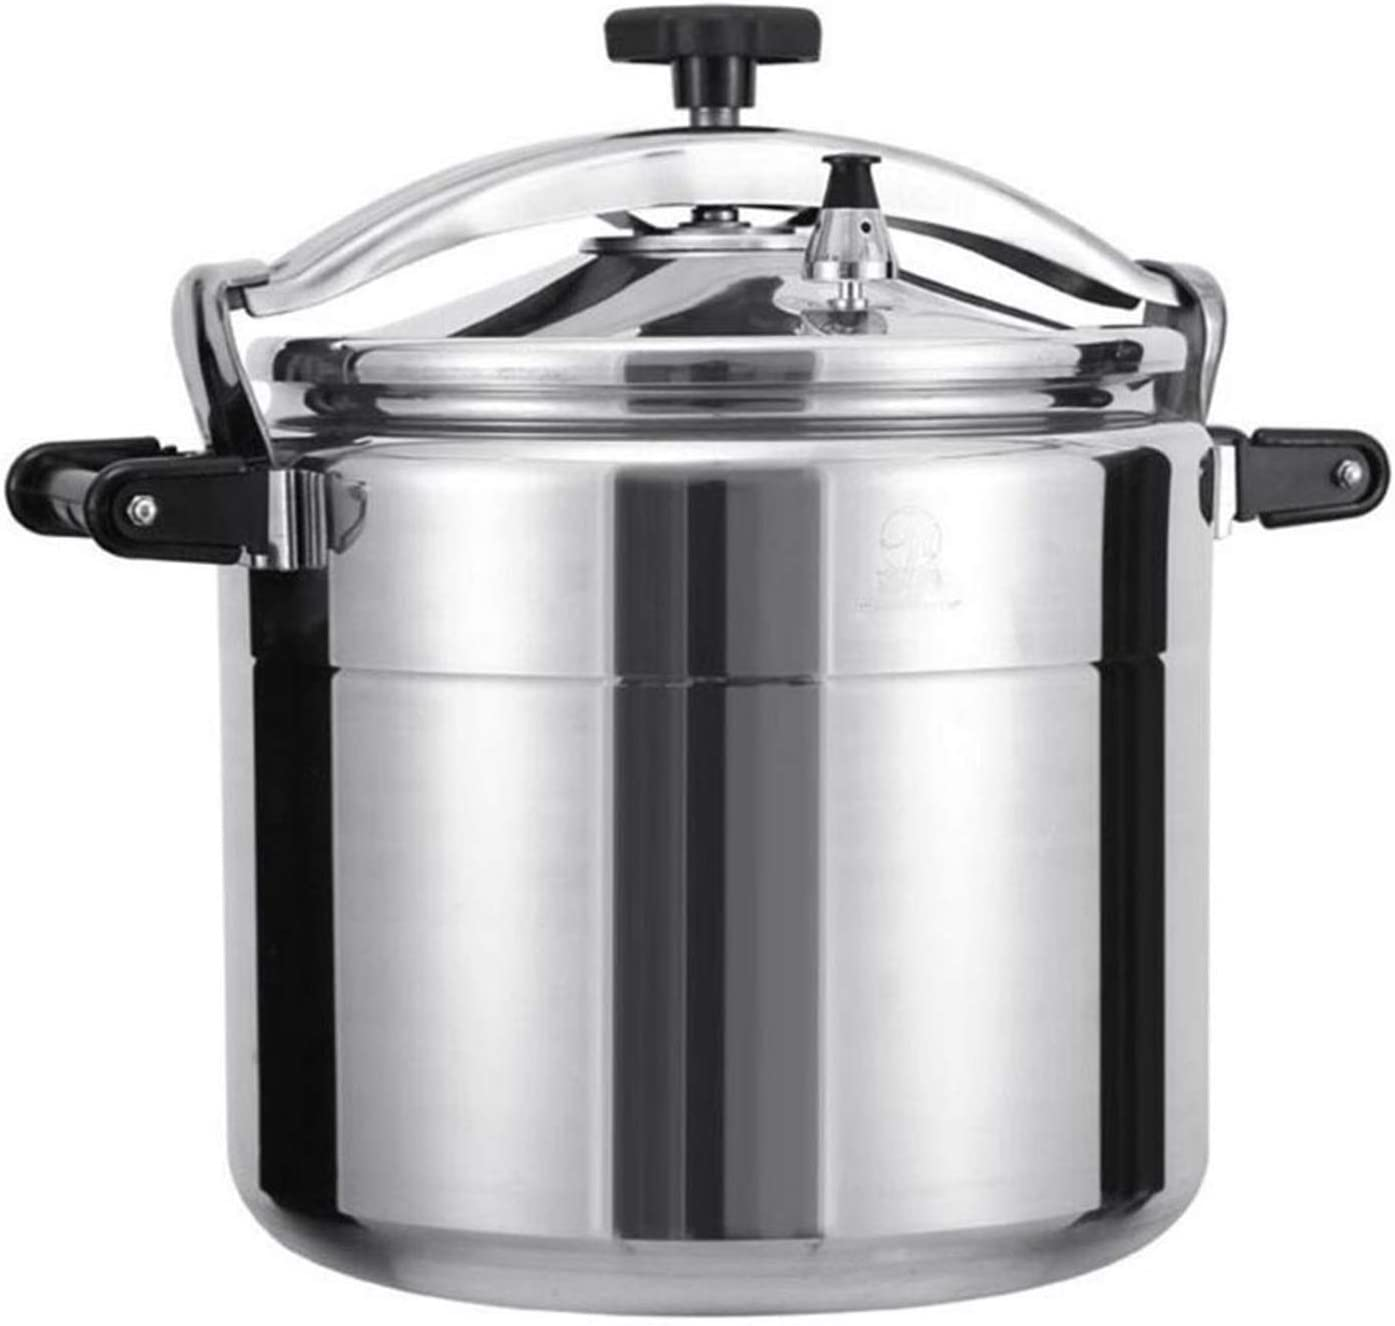 Aluminum explosion-proof pot commercial pressure cooker family restaurant canteen school, large-capacity thickened pressure cooker gas stove for open flame use 11L, 15L, 20L, 25L, 33L, 40L, 50L